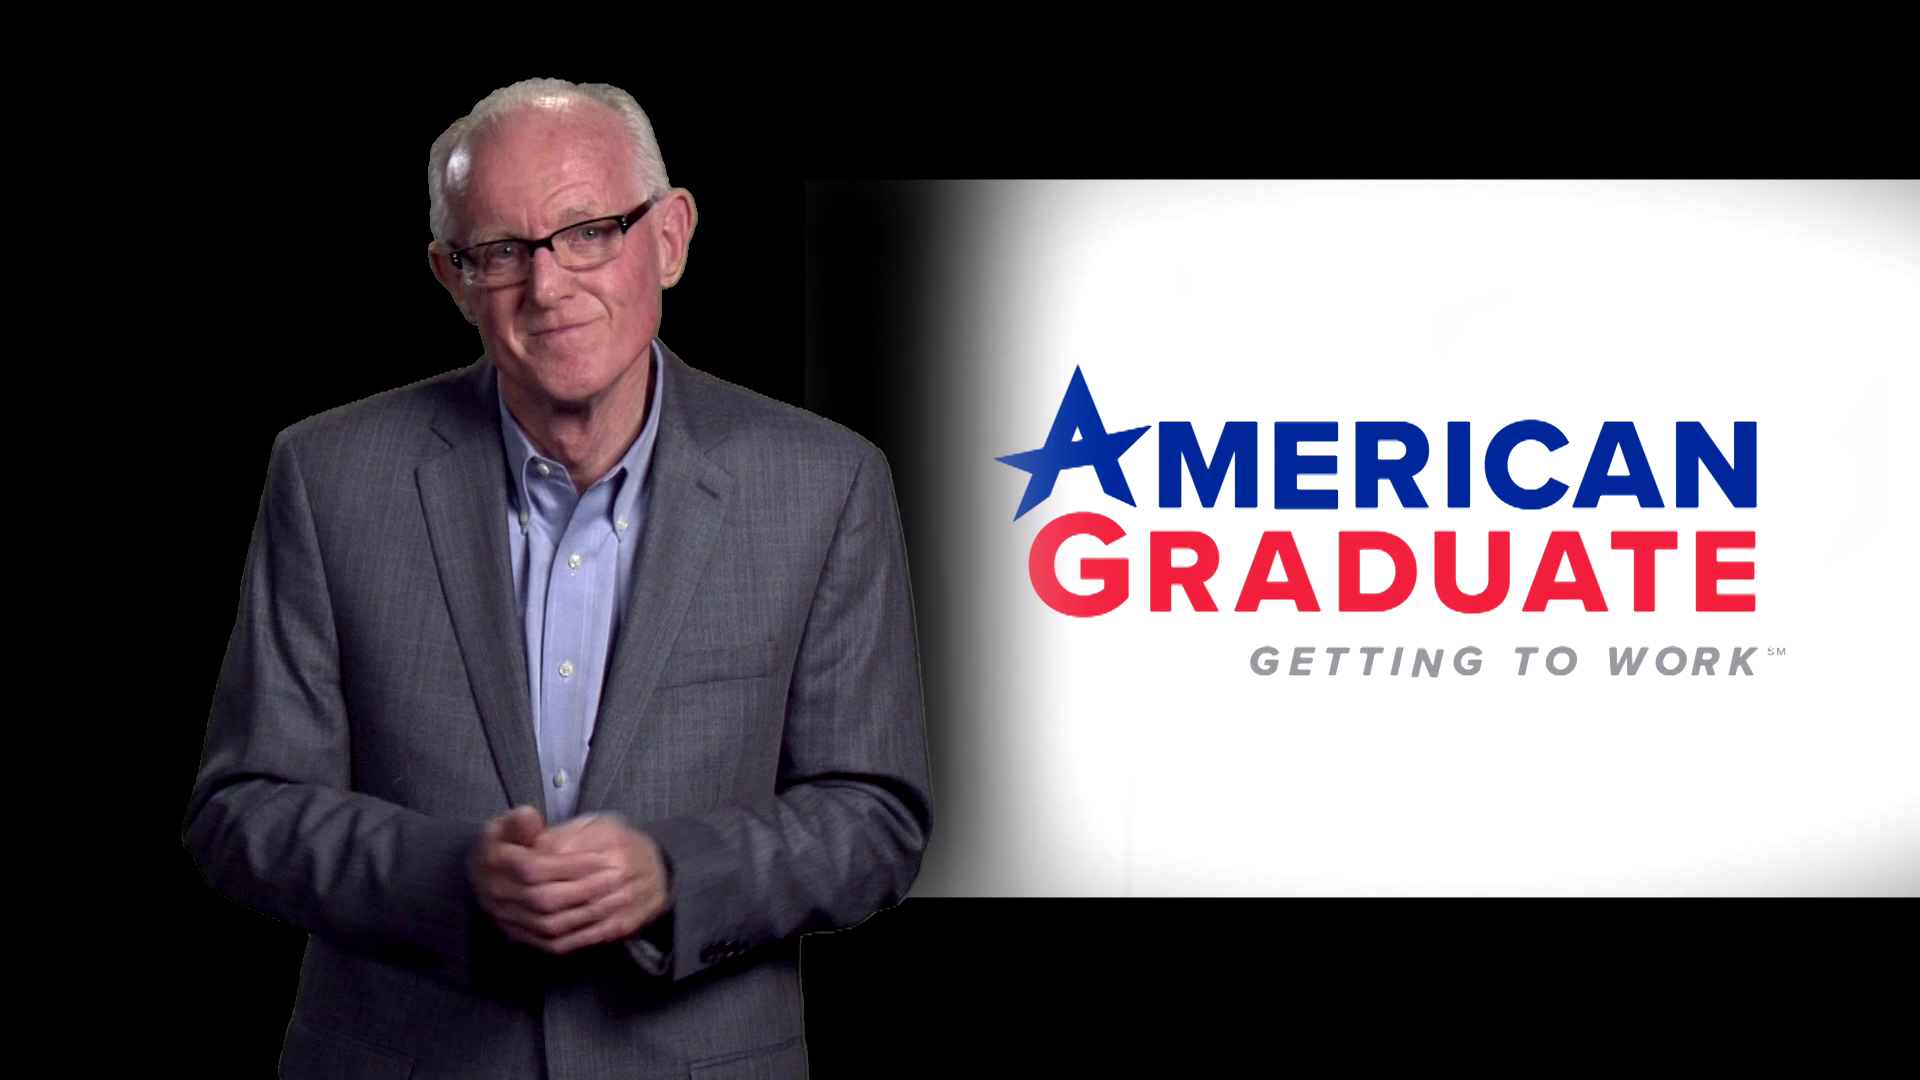 David Fogarty announces American Graduate: Getting to Work